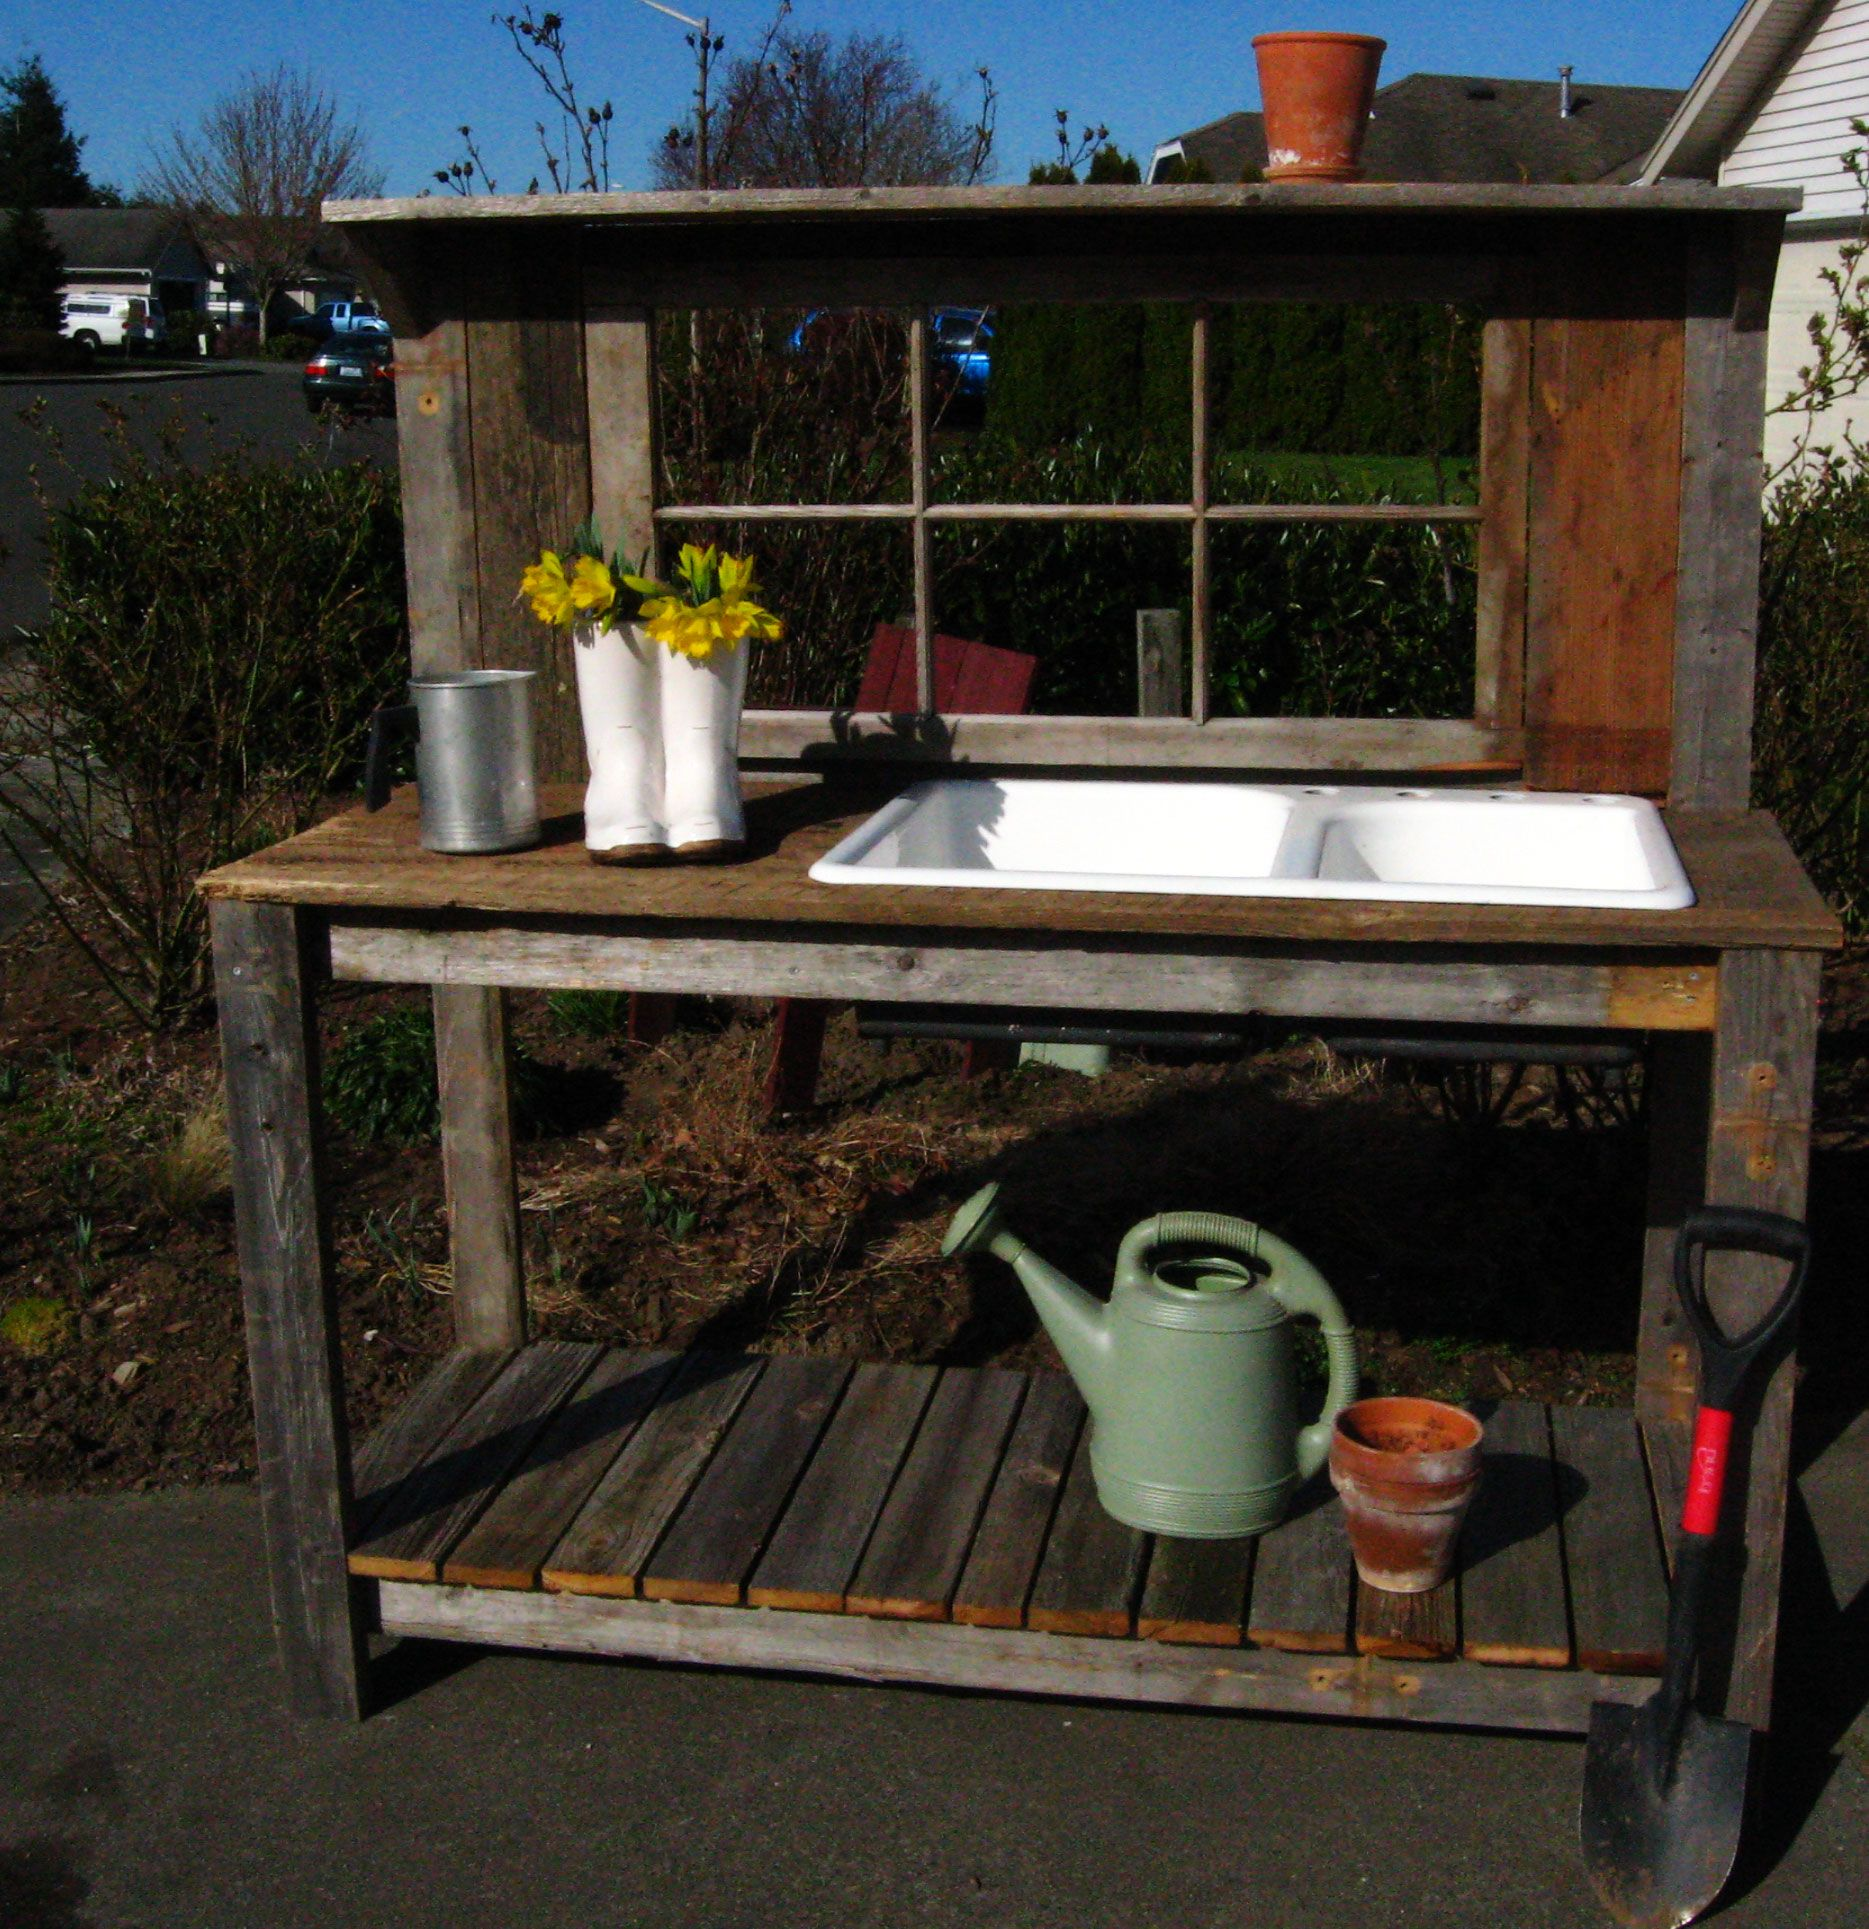 Garden Potting Bench: Potting Bench With Sink Rustic